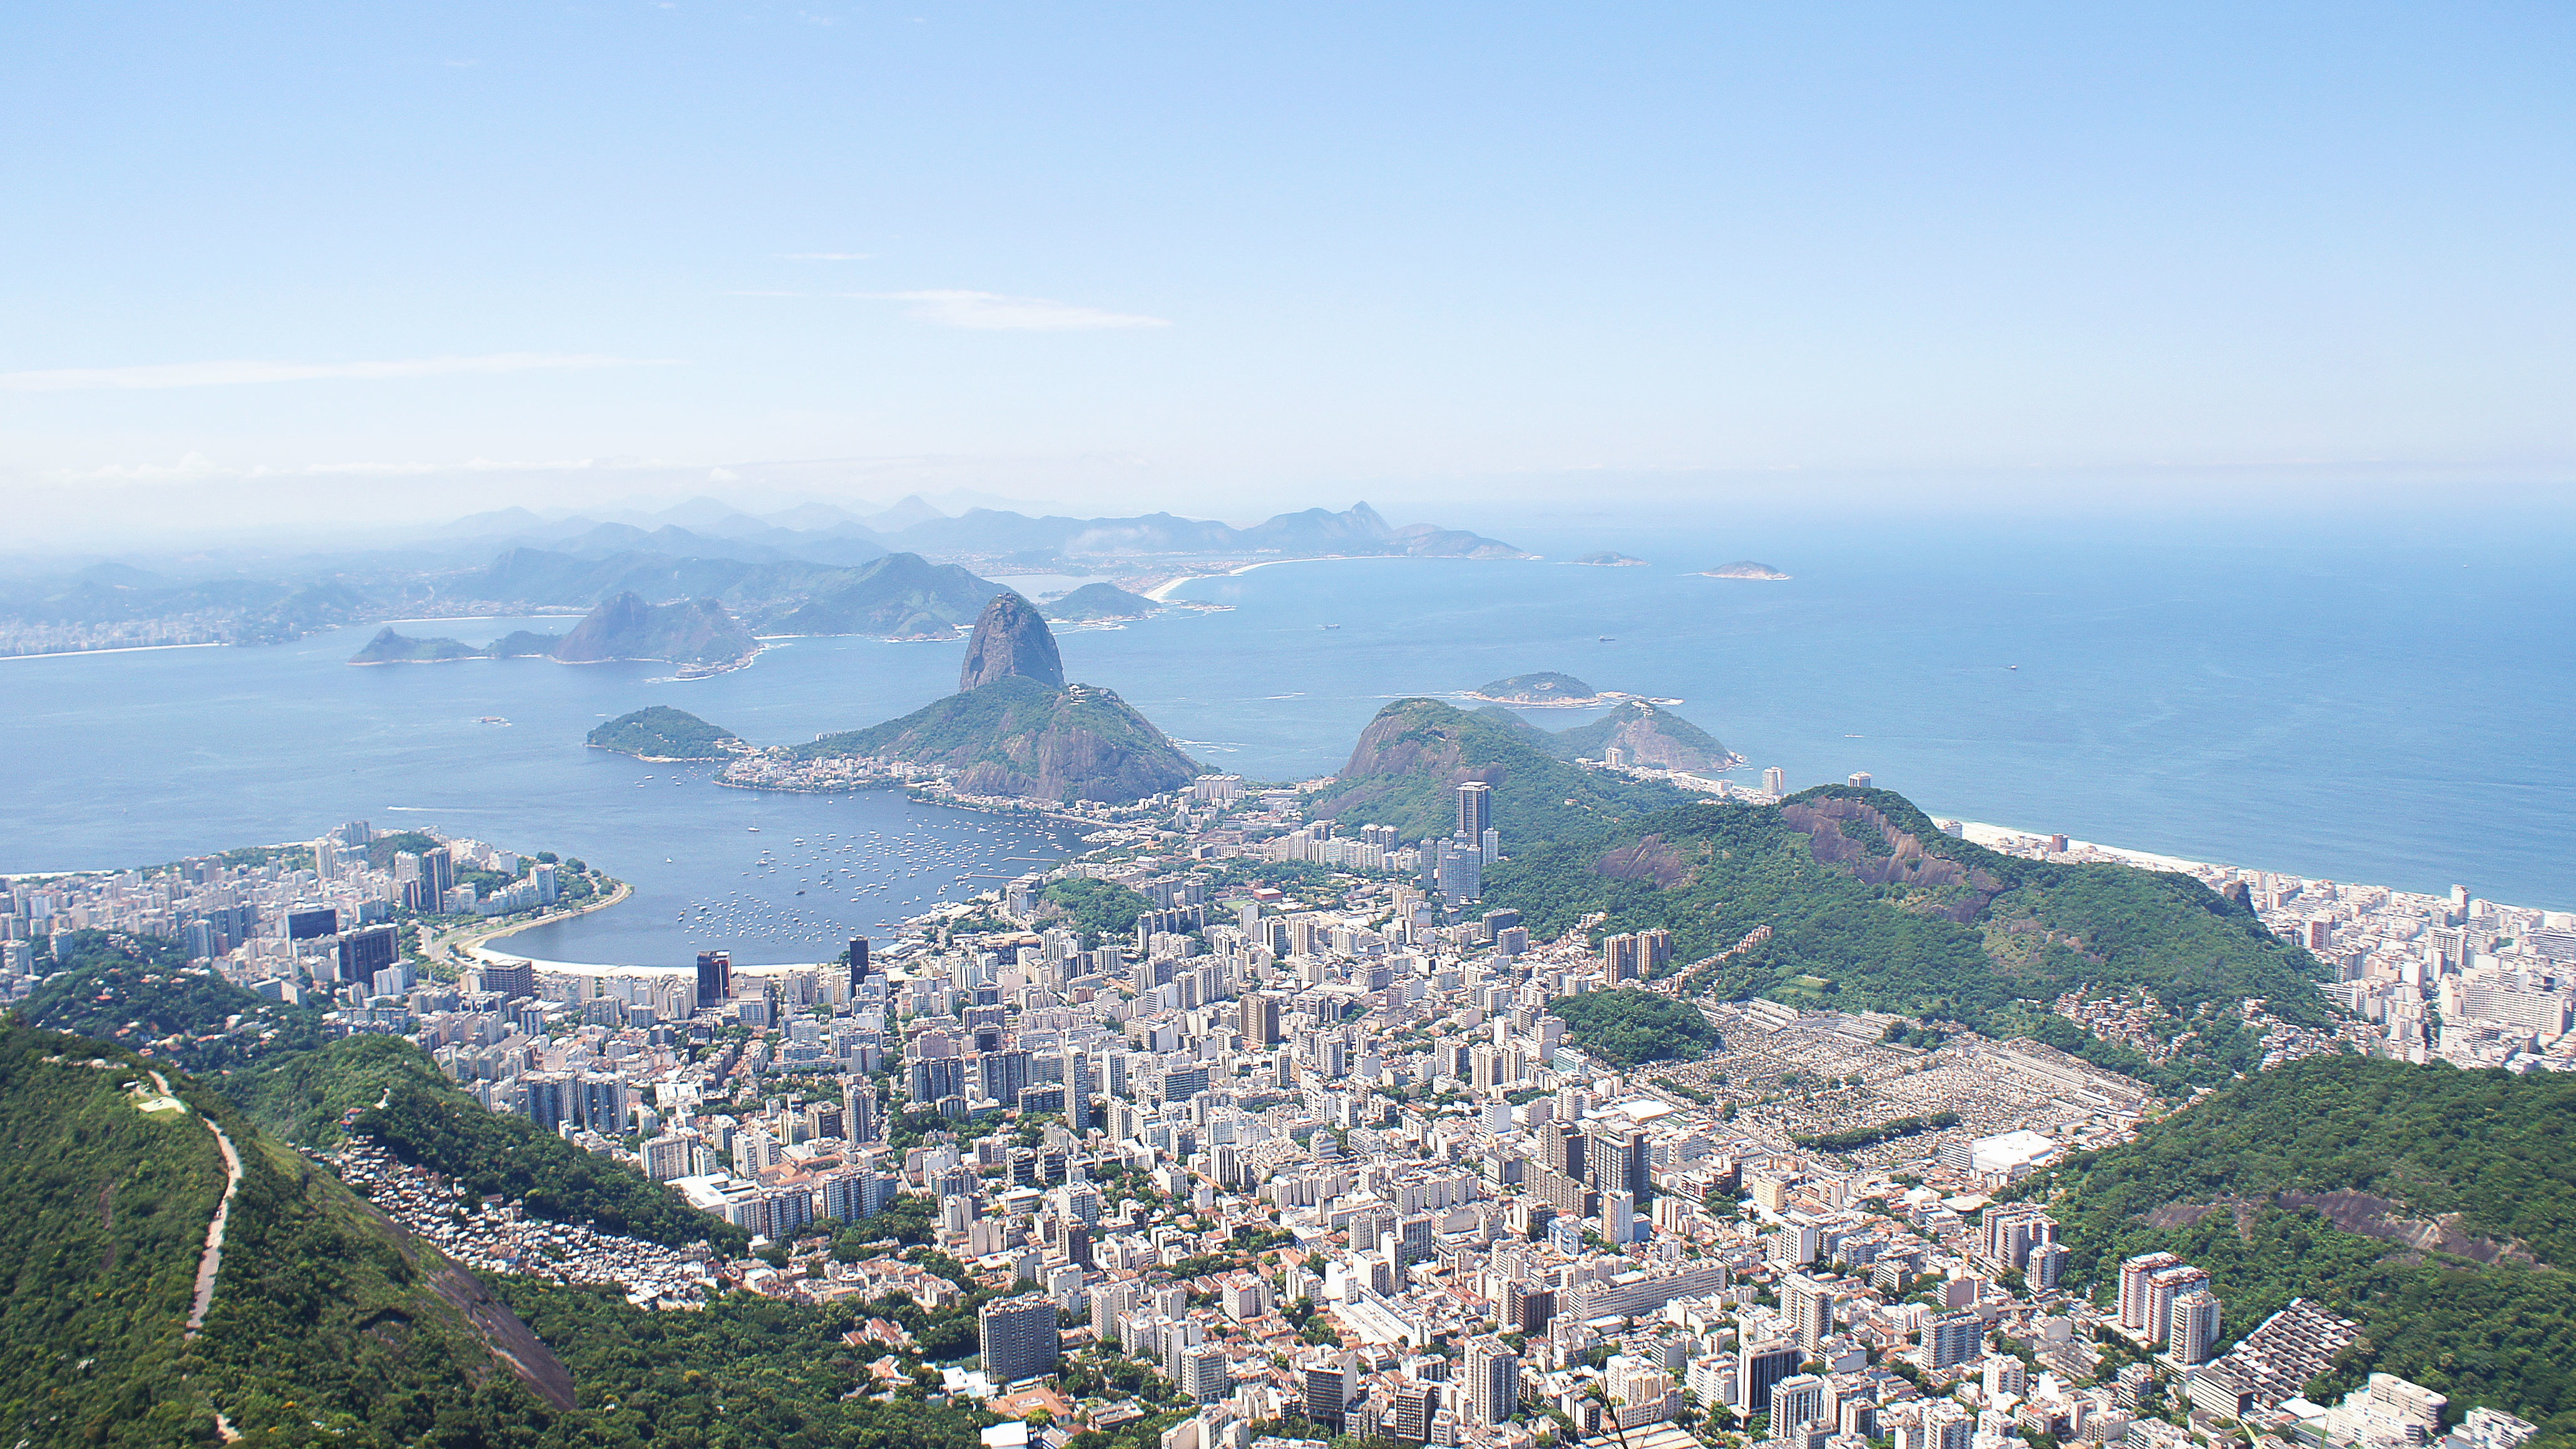 An aerial photo of Brazil.